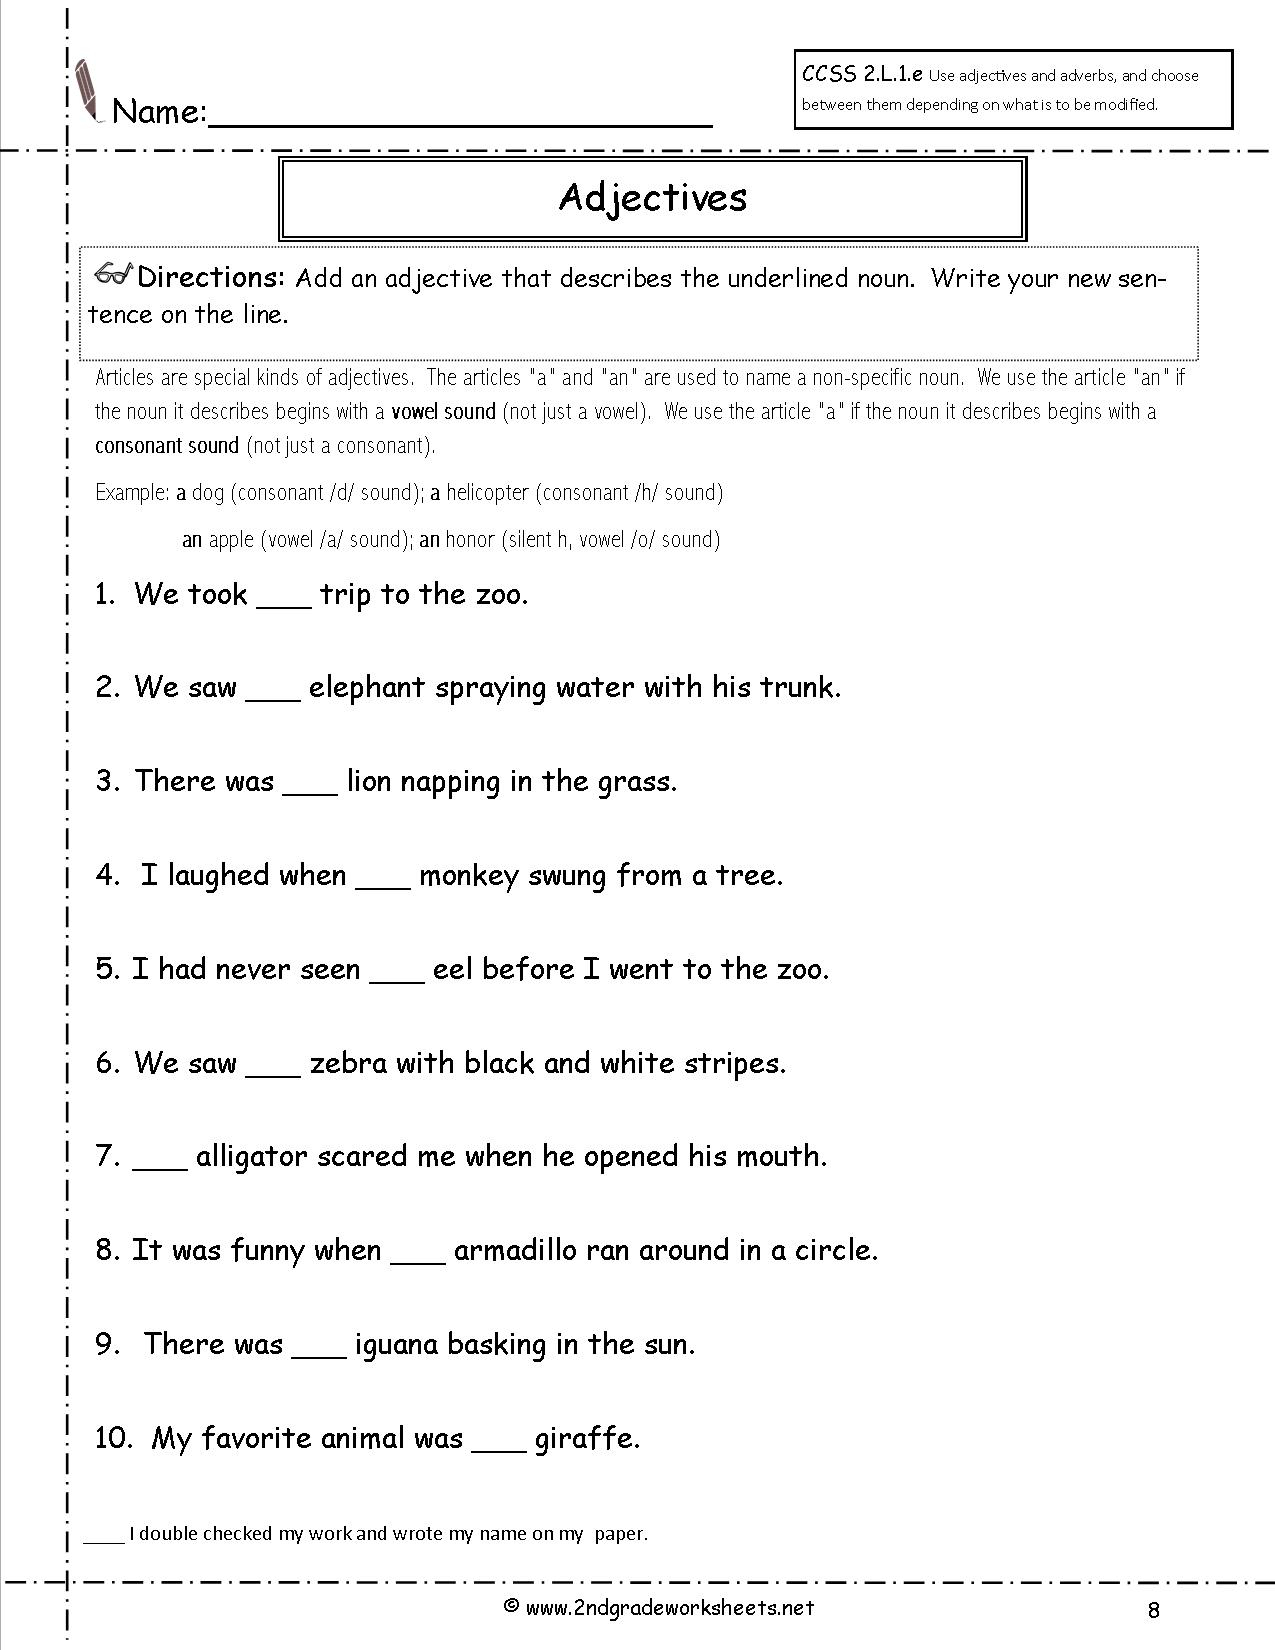 Free Language/grammar Worksheets And Printouts | Free Printable Language Worksheets